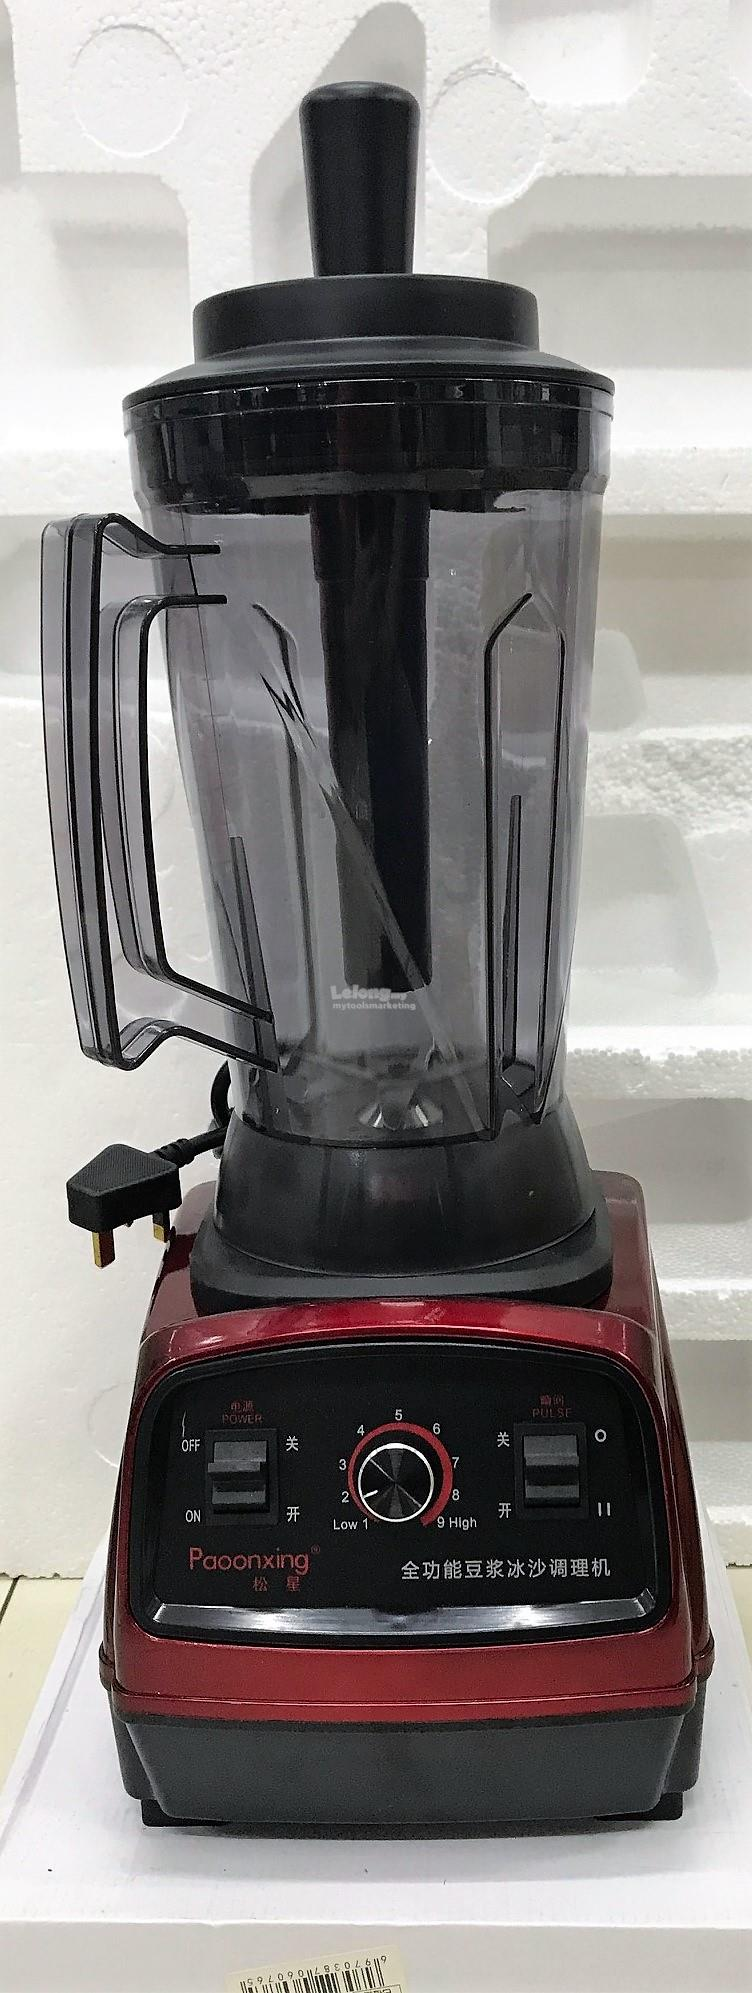 Paoonxing 4Litre 2200W Super Duty Multipurpose Commercial Blender